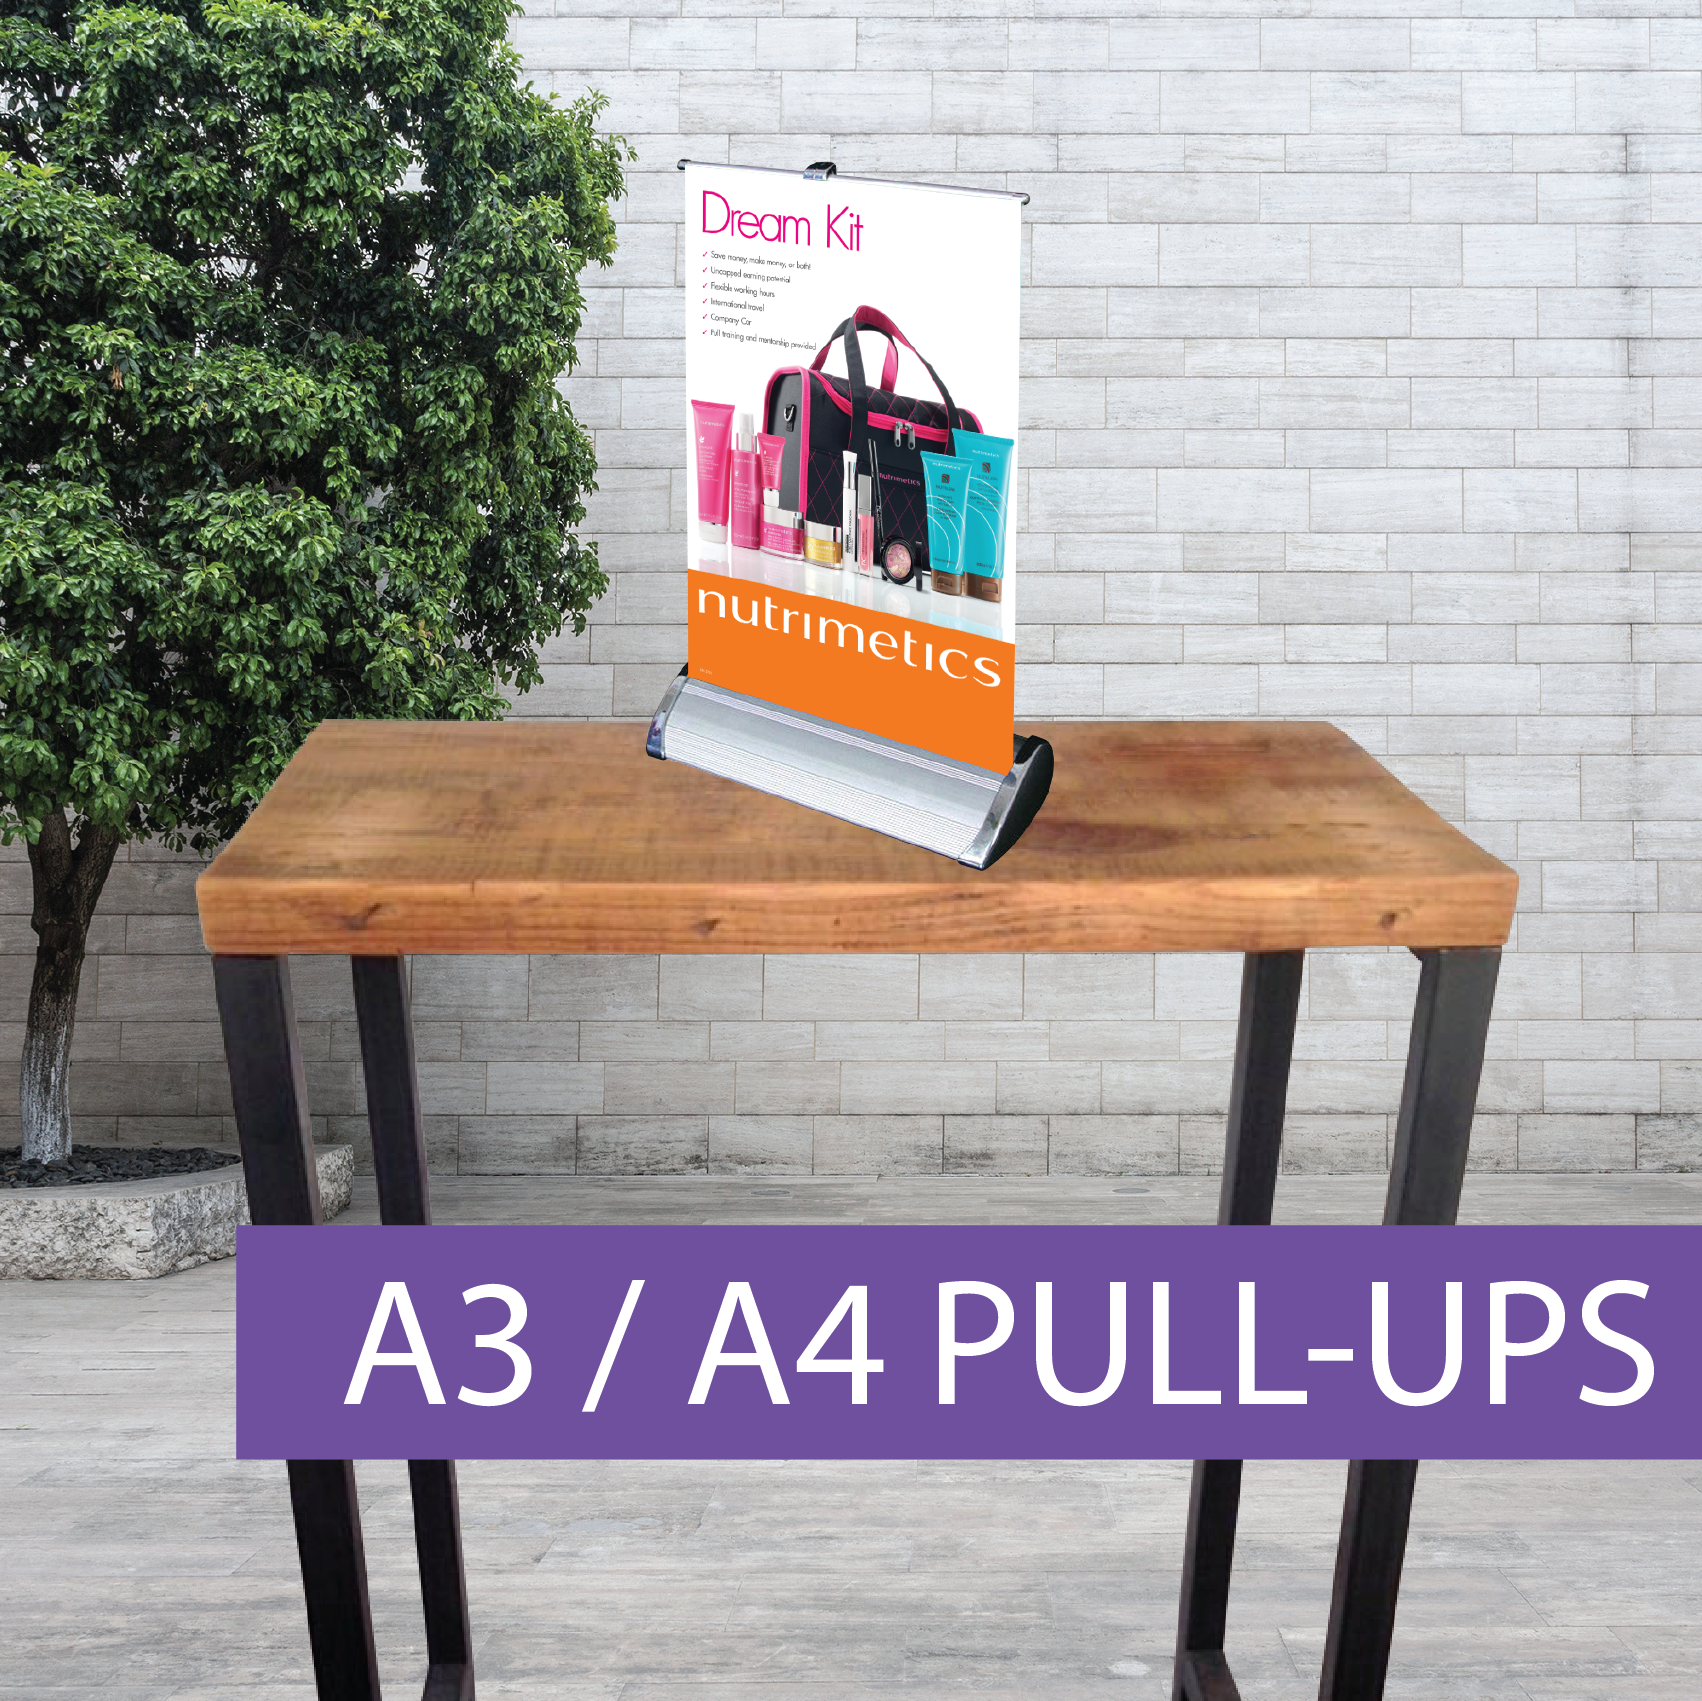 A3 Pull-up banner